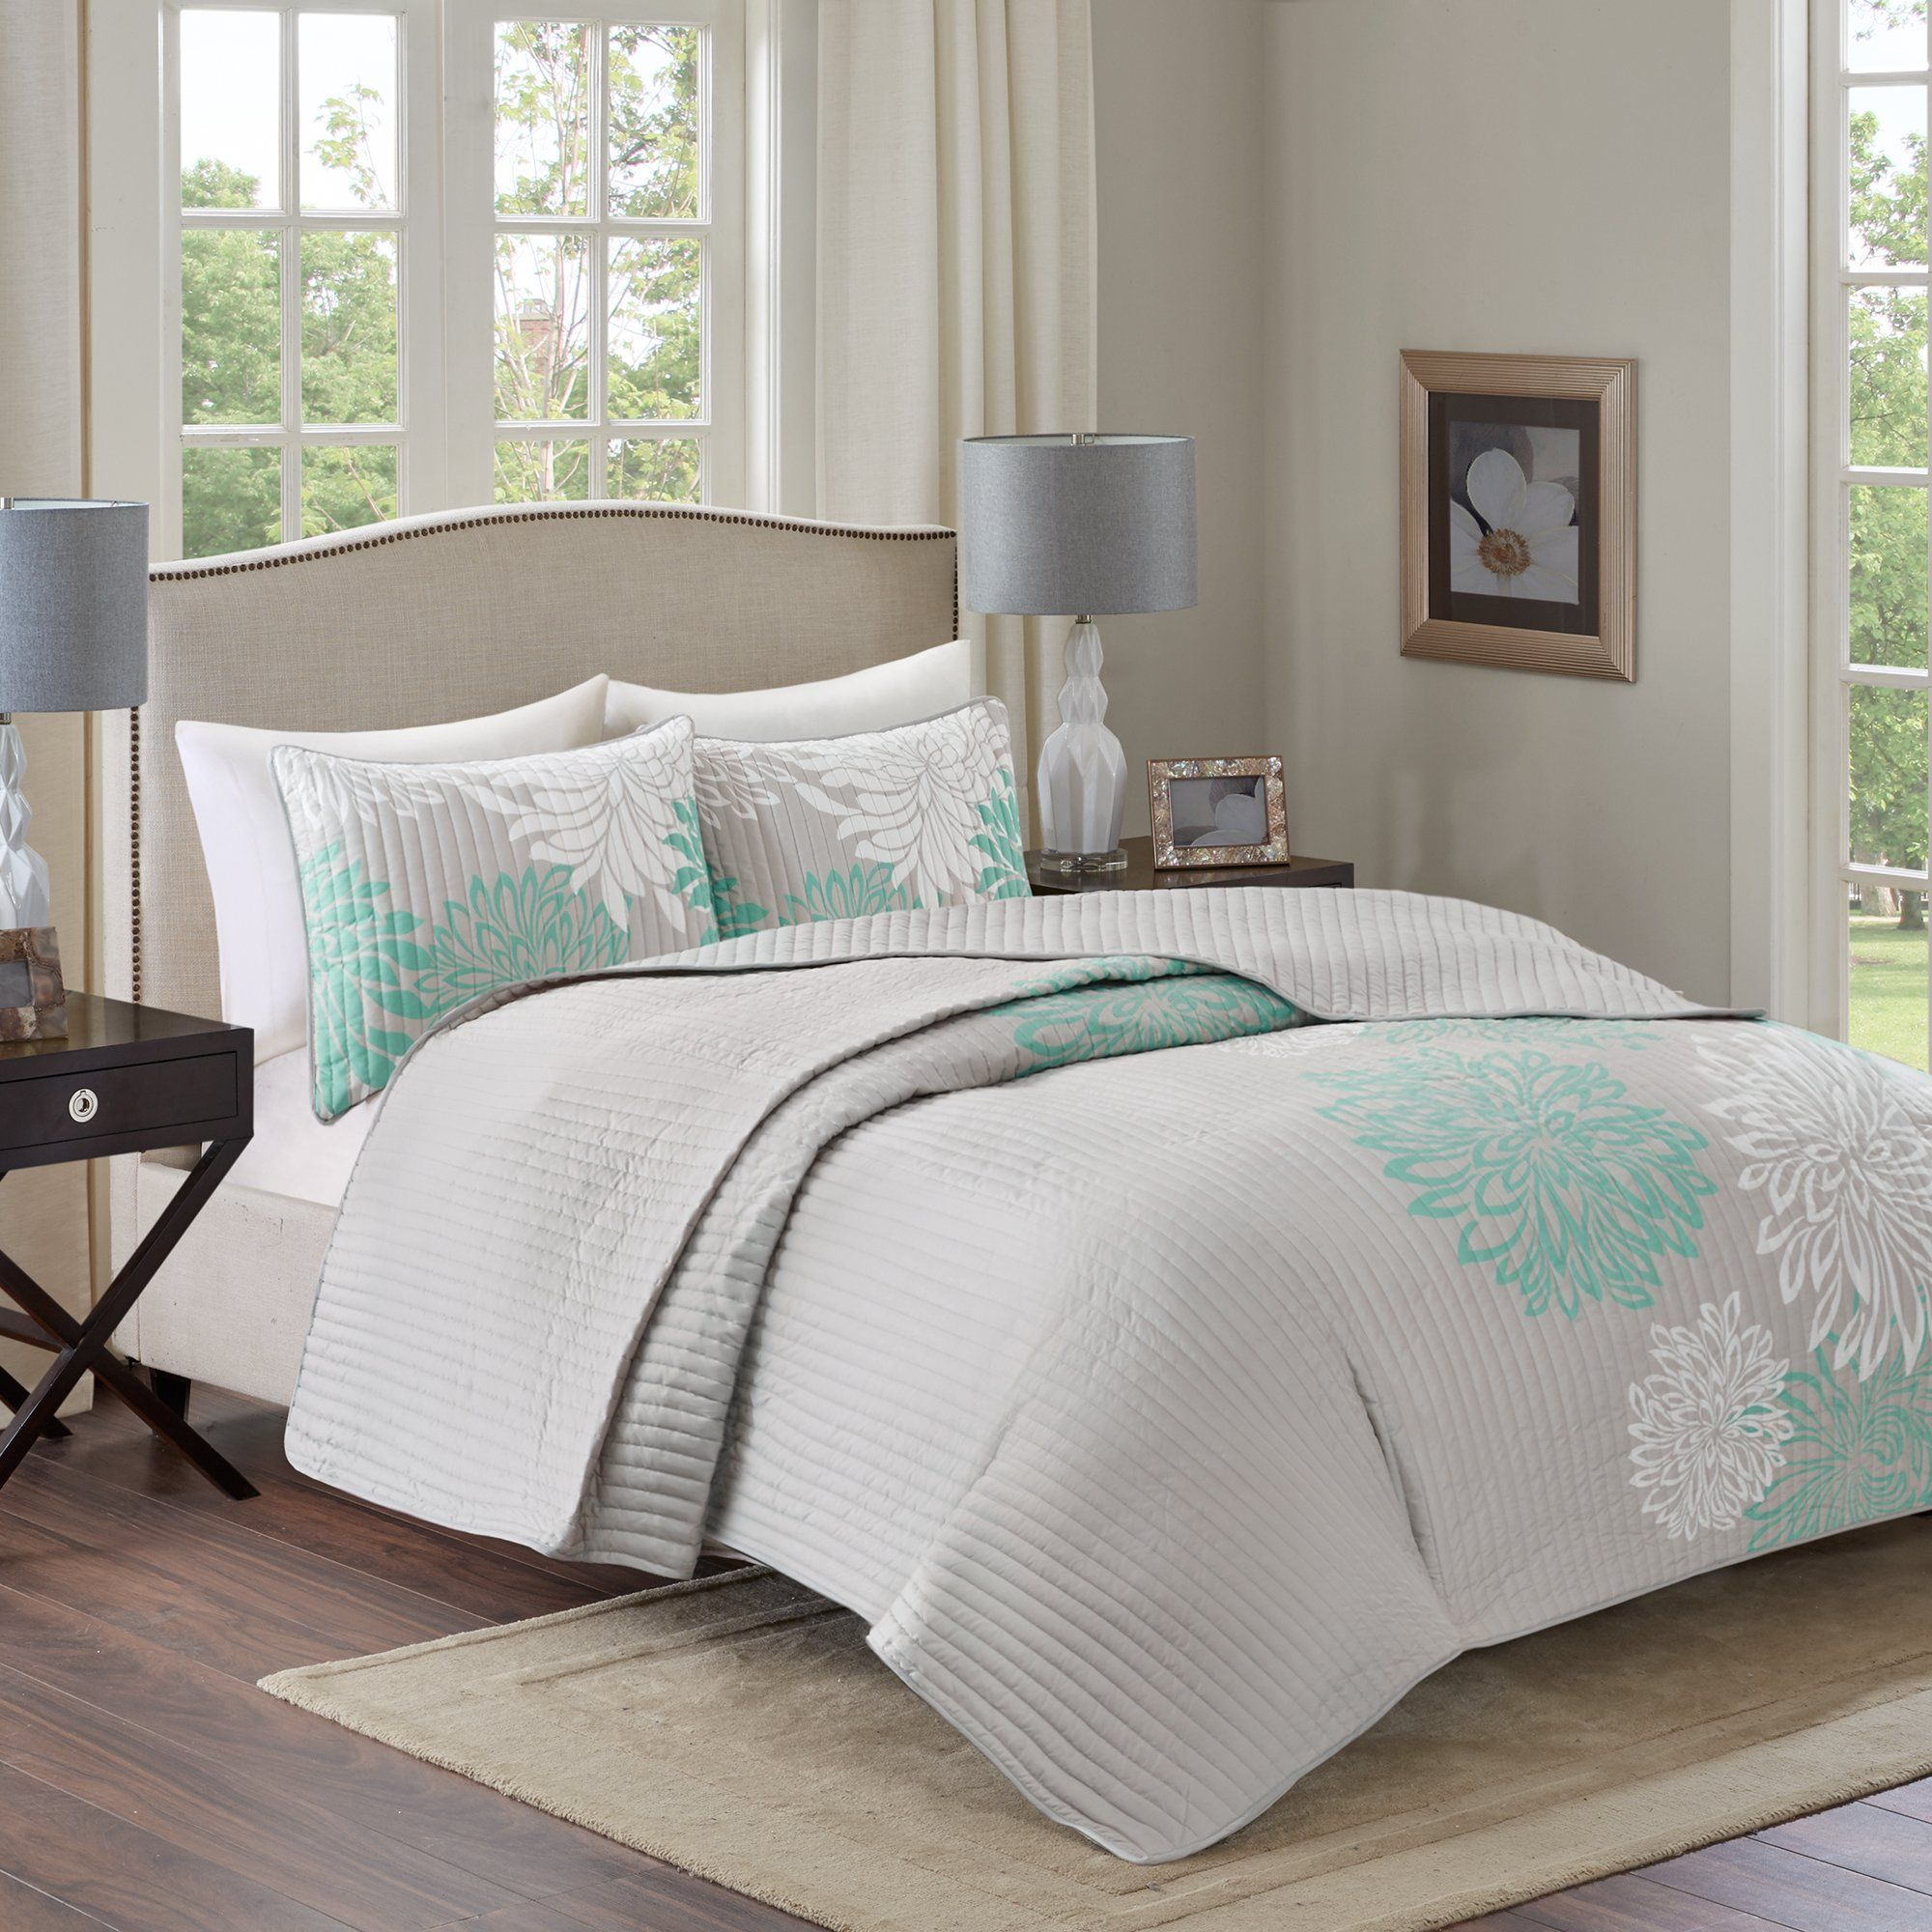 Comfort Spaces - Enya Quilt Mini Set - 3 Piece - Aqua and Grey - Floral Printed Pattern - Full/Queen size, includes 1 Quilt, 2 Shams